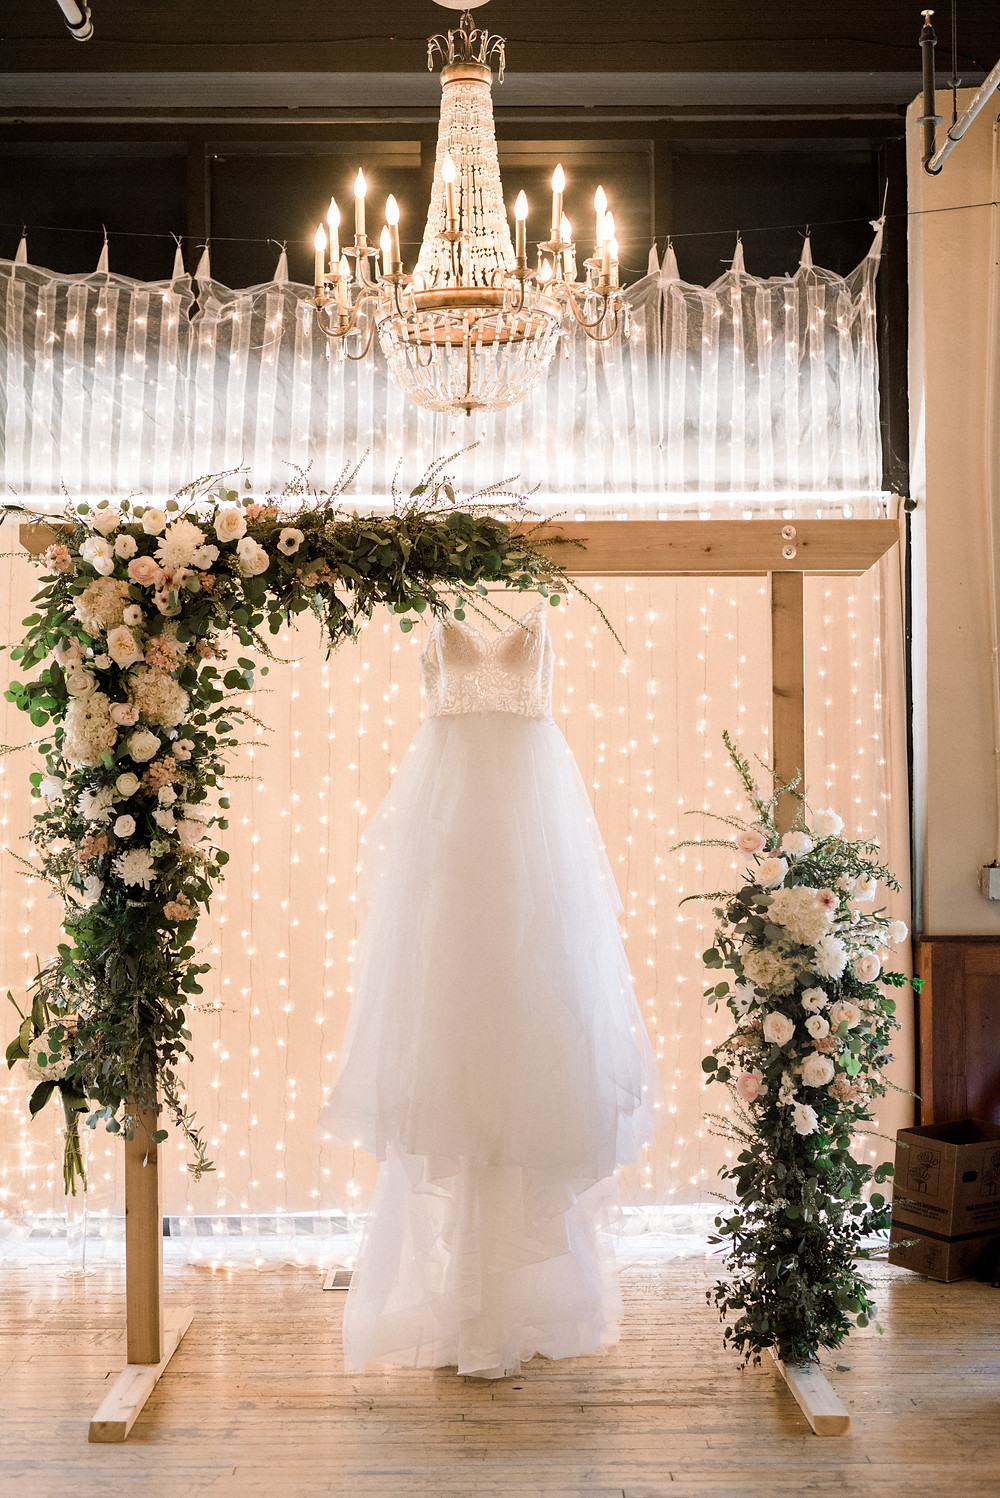 Wedding Dress Blush Garden Arch Flowers Sioux Falls SD The ICON Thistle and Dot Floral Design